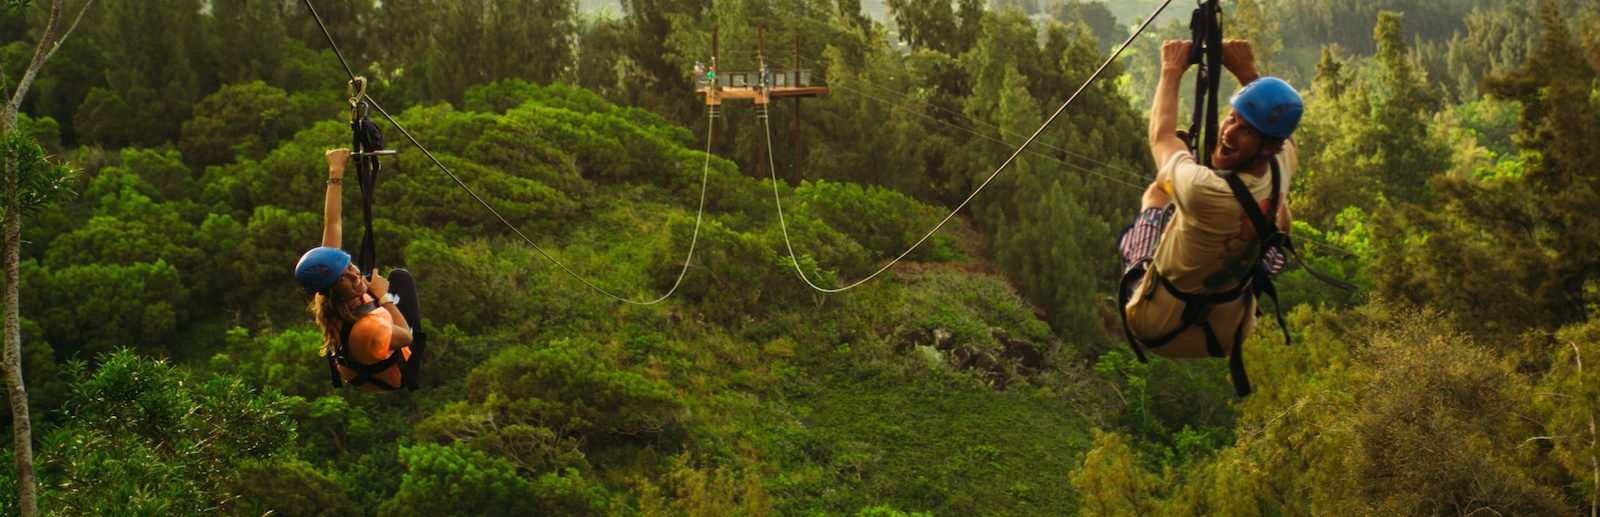 The History of Ziplining: From Jungle Exploration to Vacation Fun